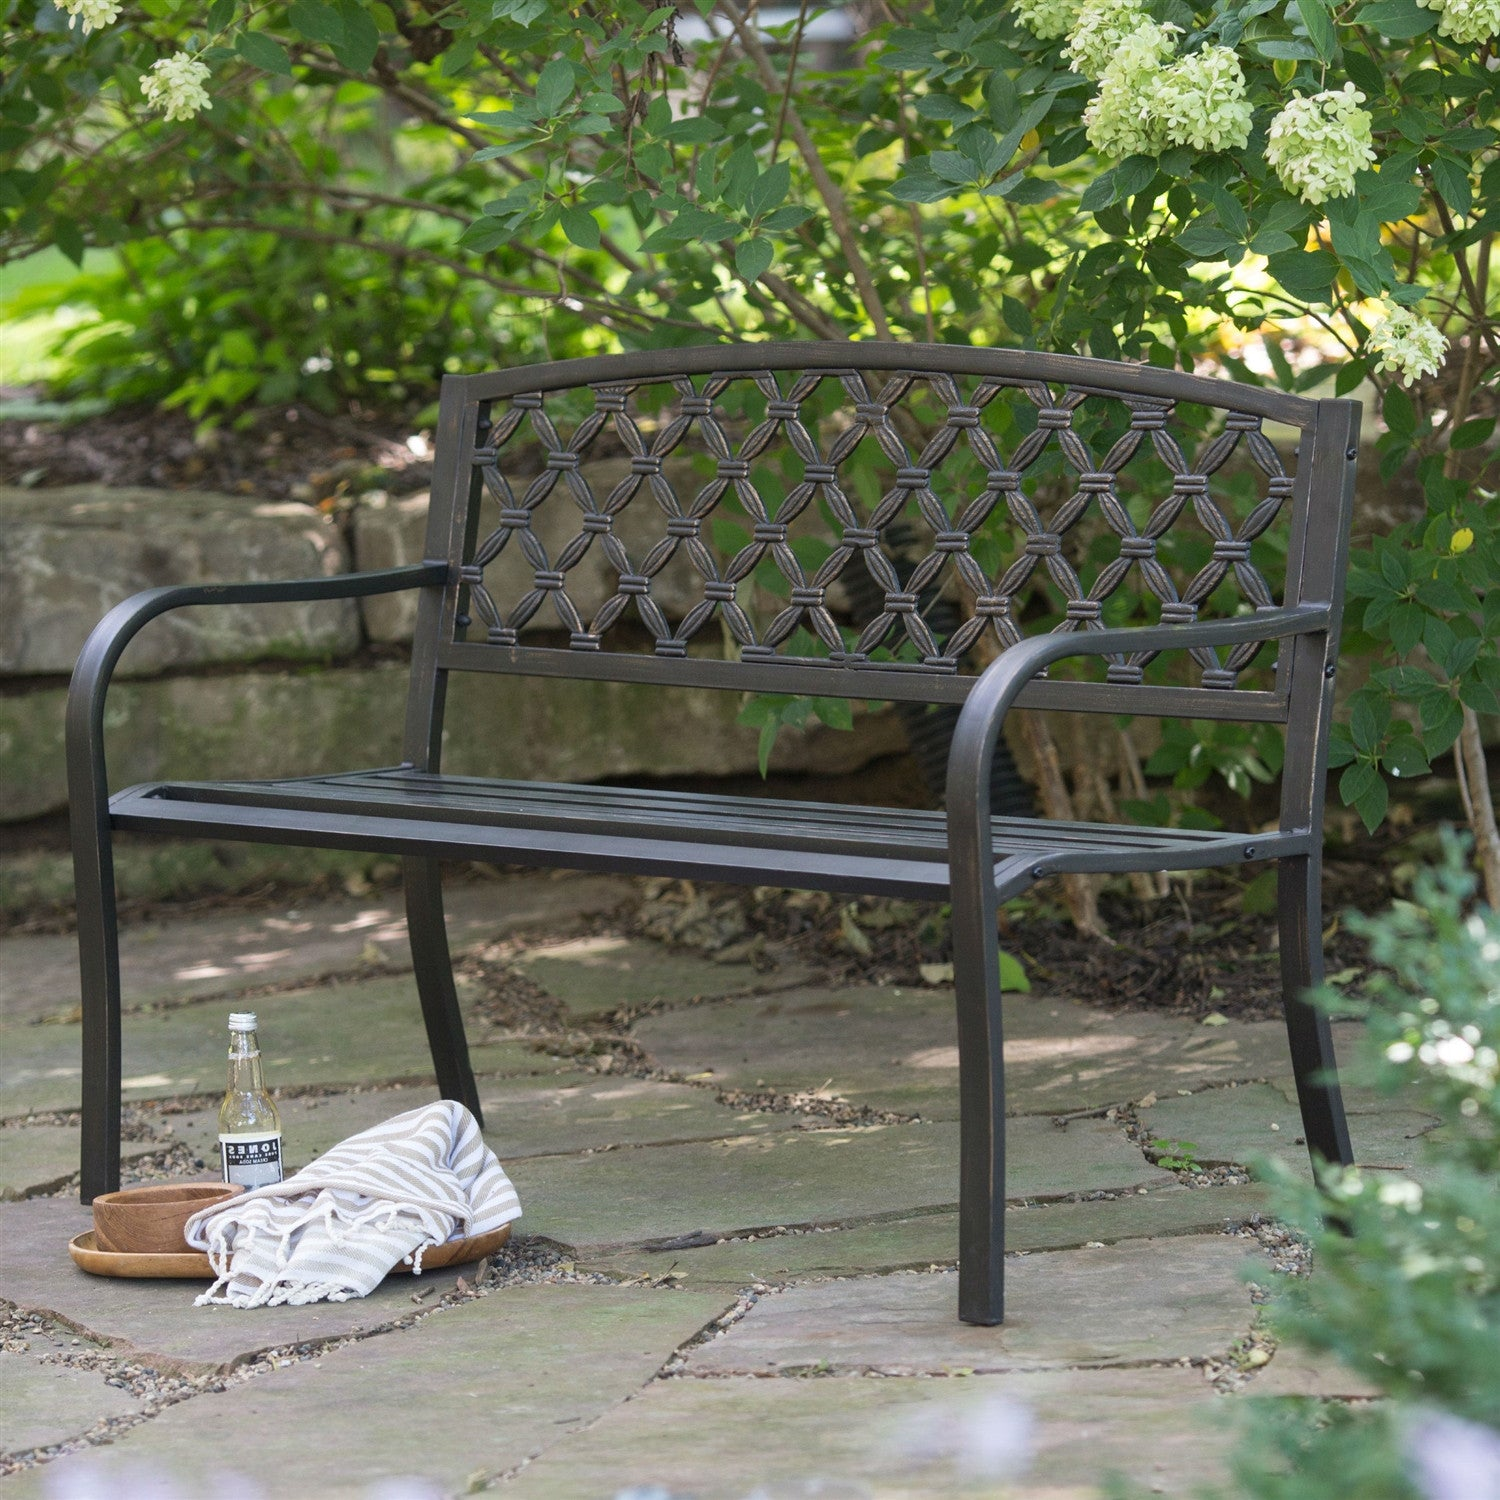 Marvelous 4 Ft Curved Back Metal Garden Bench In Weathered Black With Antique Bronze Highlights Bralicious Painted Fabric Chair Ideas Braliciousco